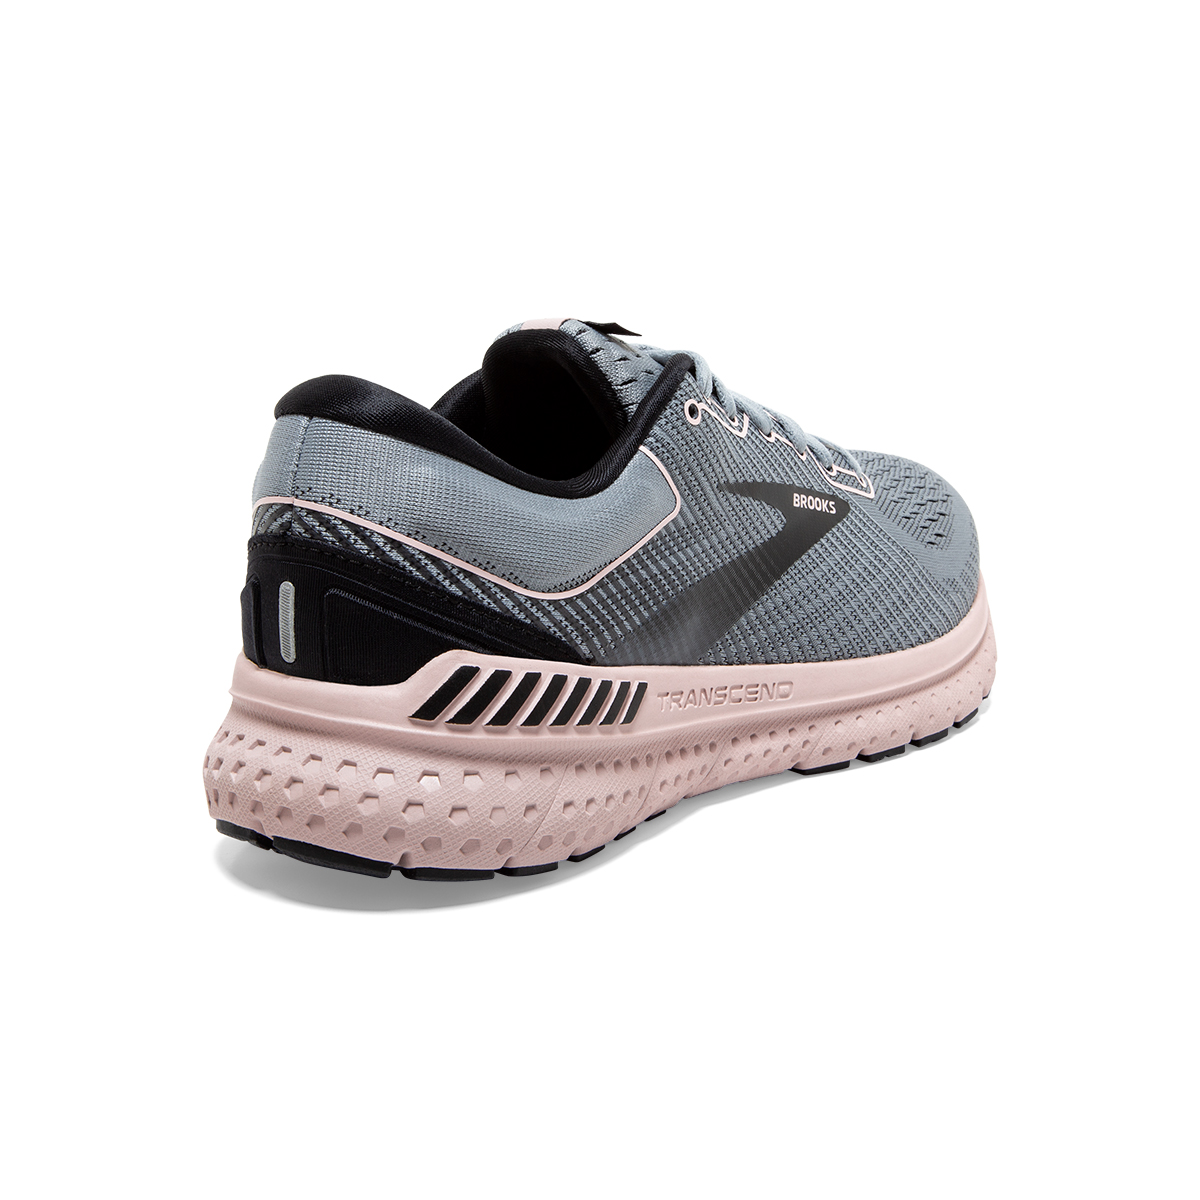 Women's Brooks Transcend 7 Running Shoe - Color: Grey/Black/Hushed Pink - Size: 6 - Width: Regular, Grey/Black/Hushed Pink, large, image 4